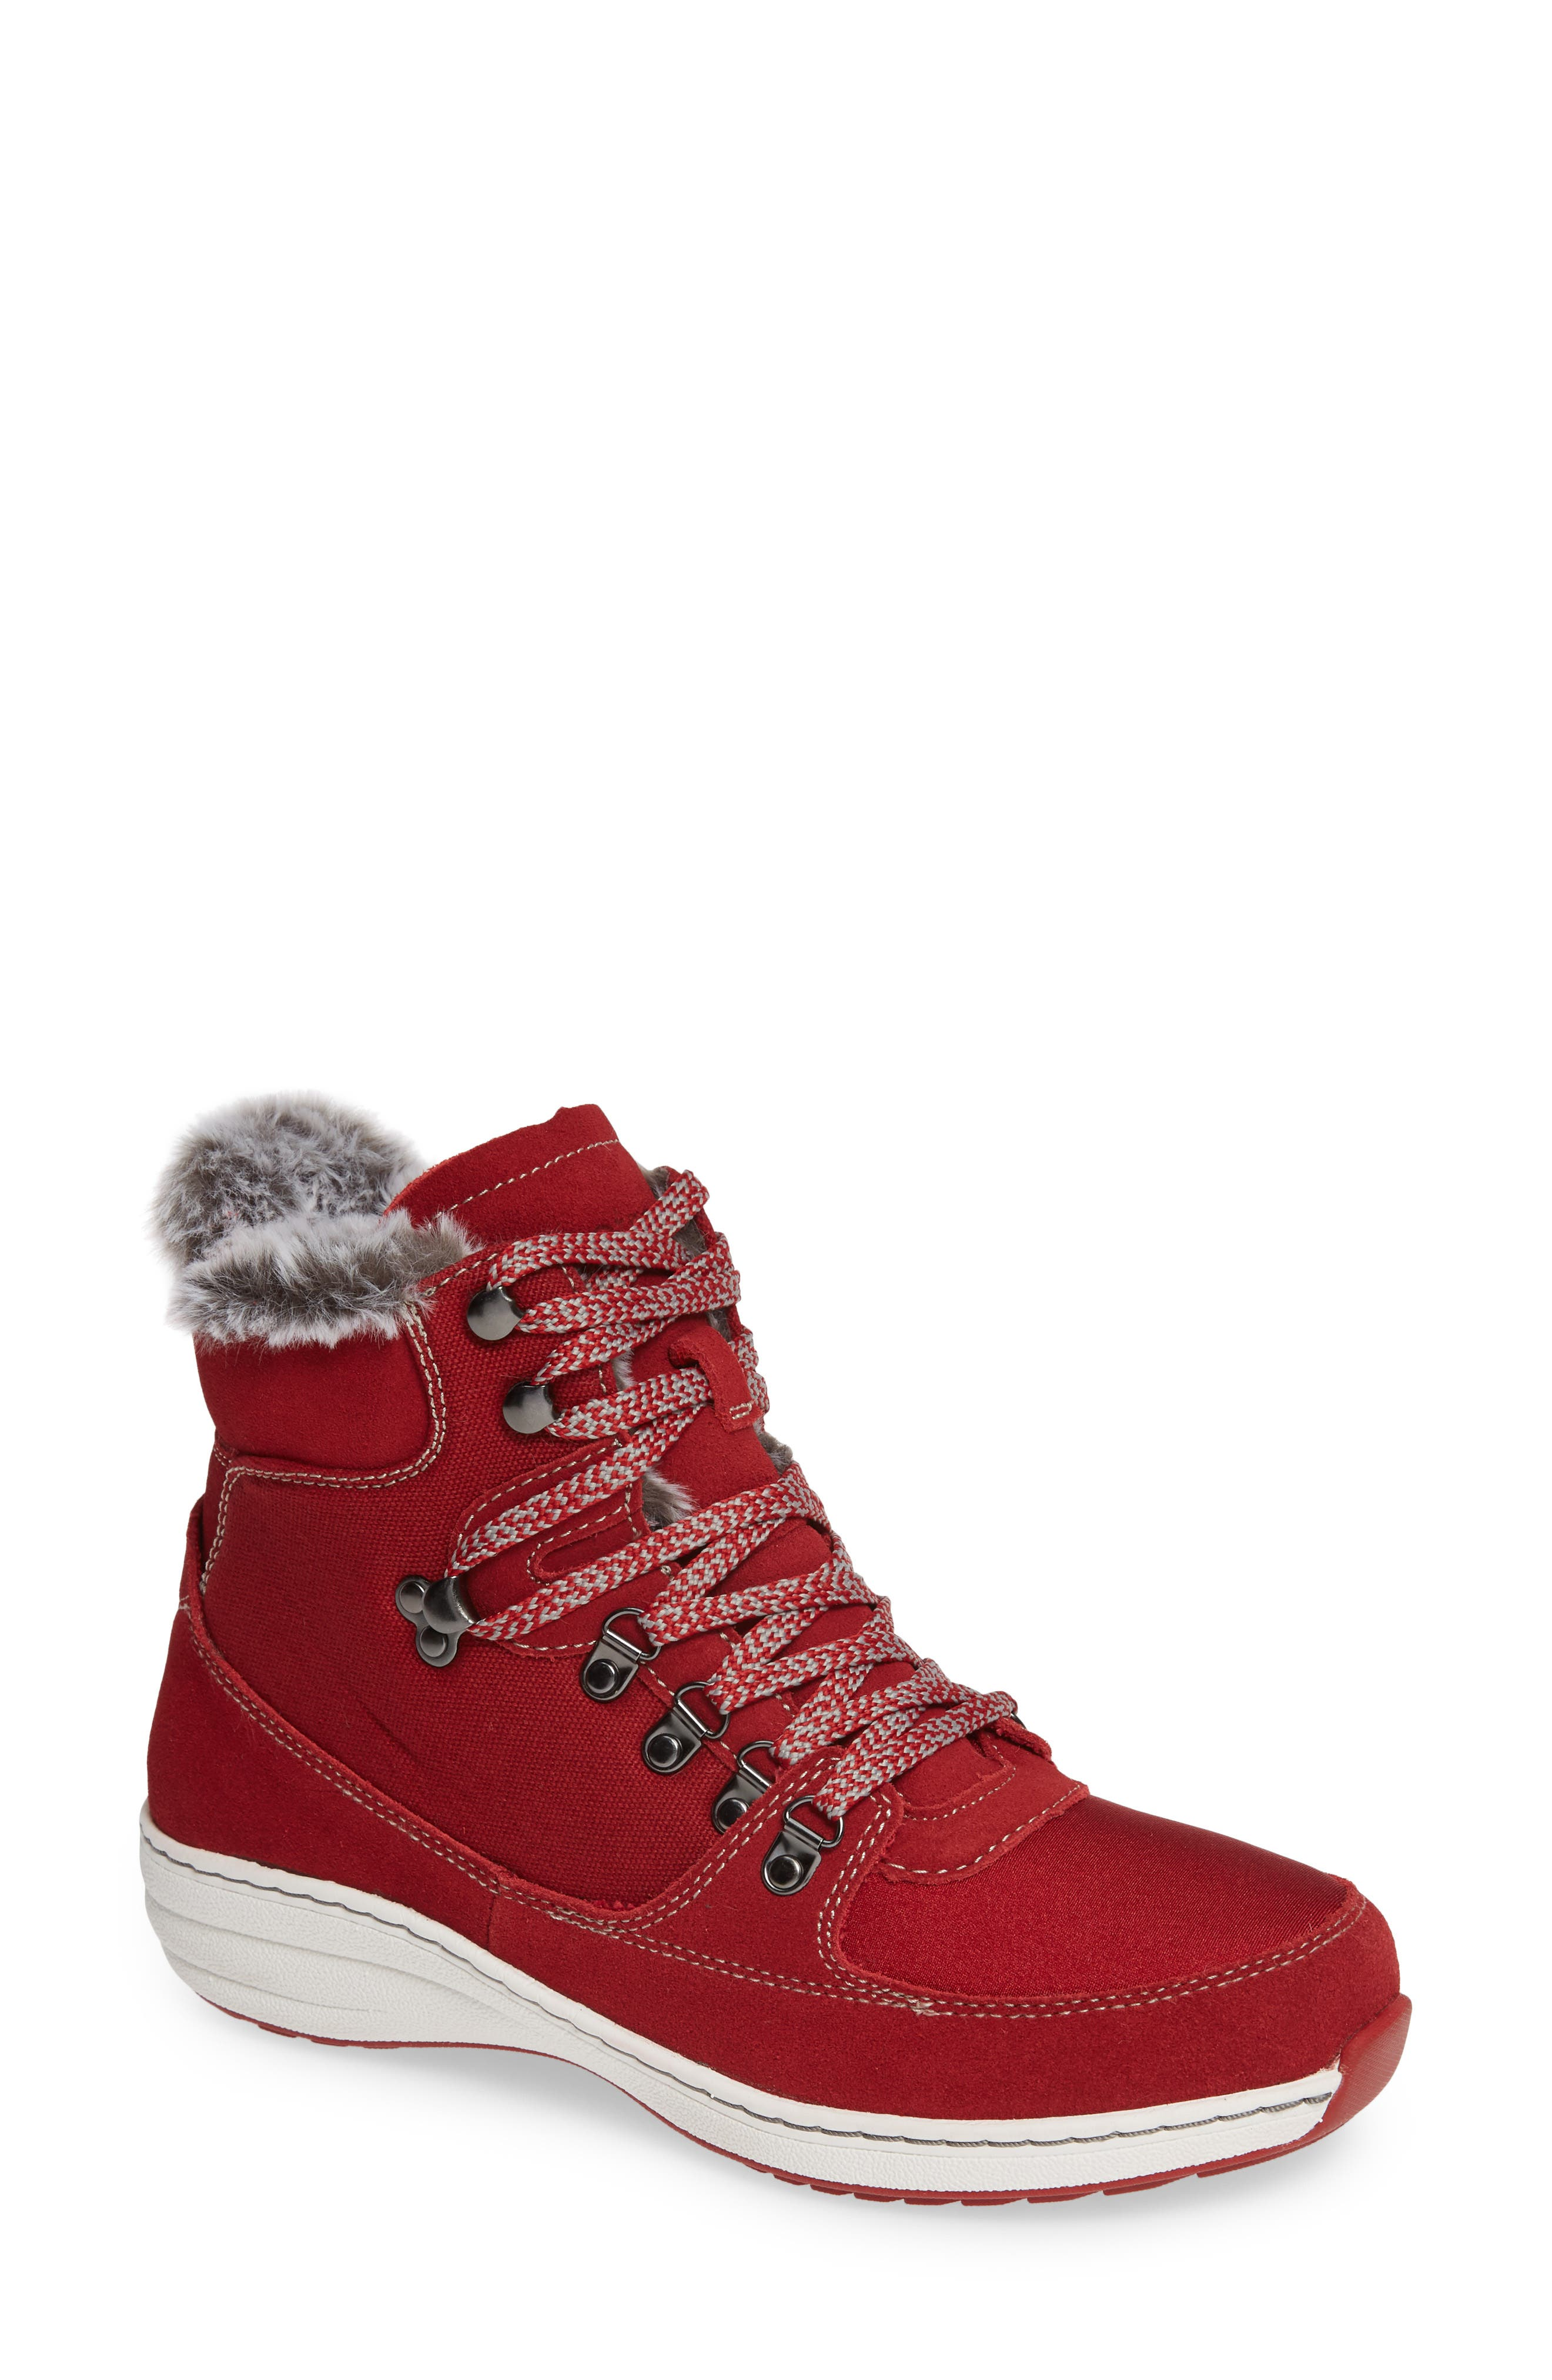 Aetrex Kelsey Faux Fur Lined Hiker Boot, Red